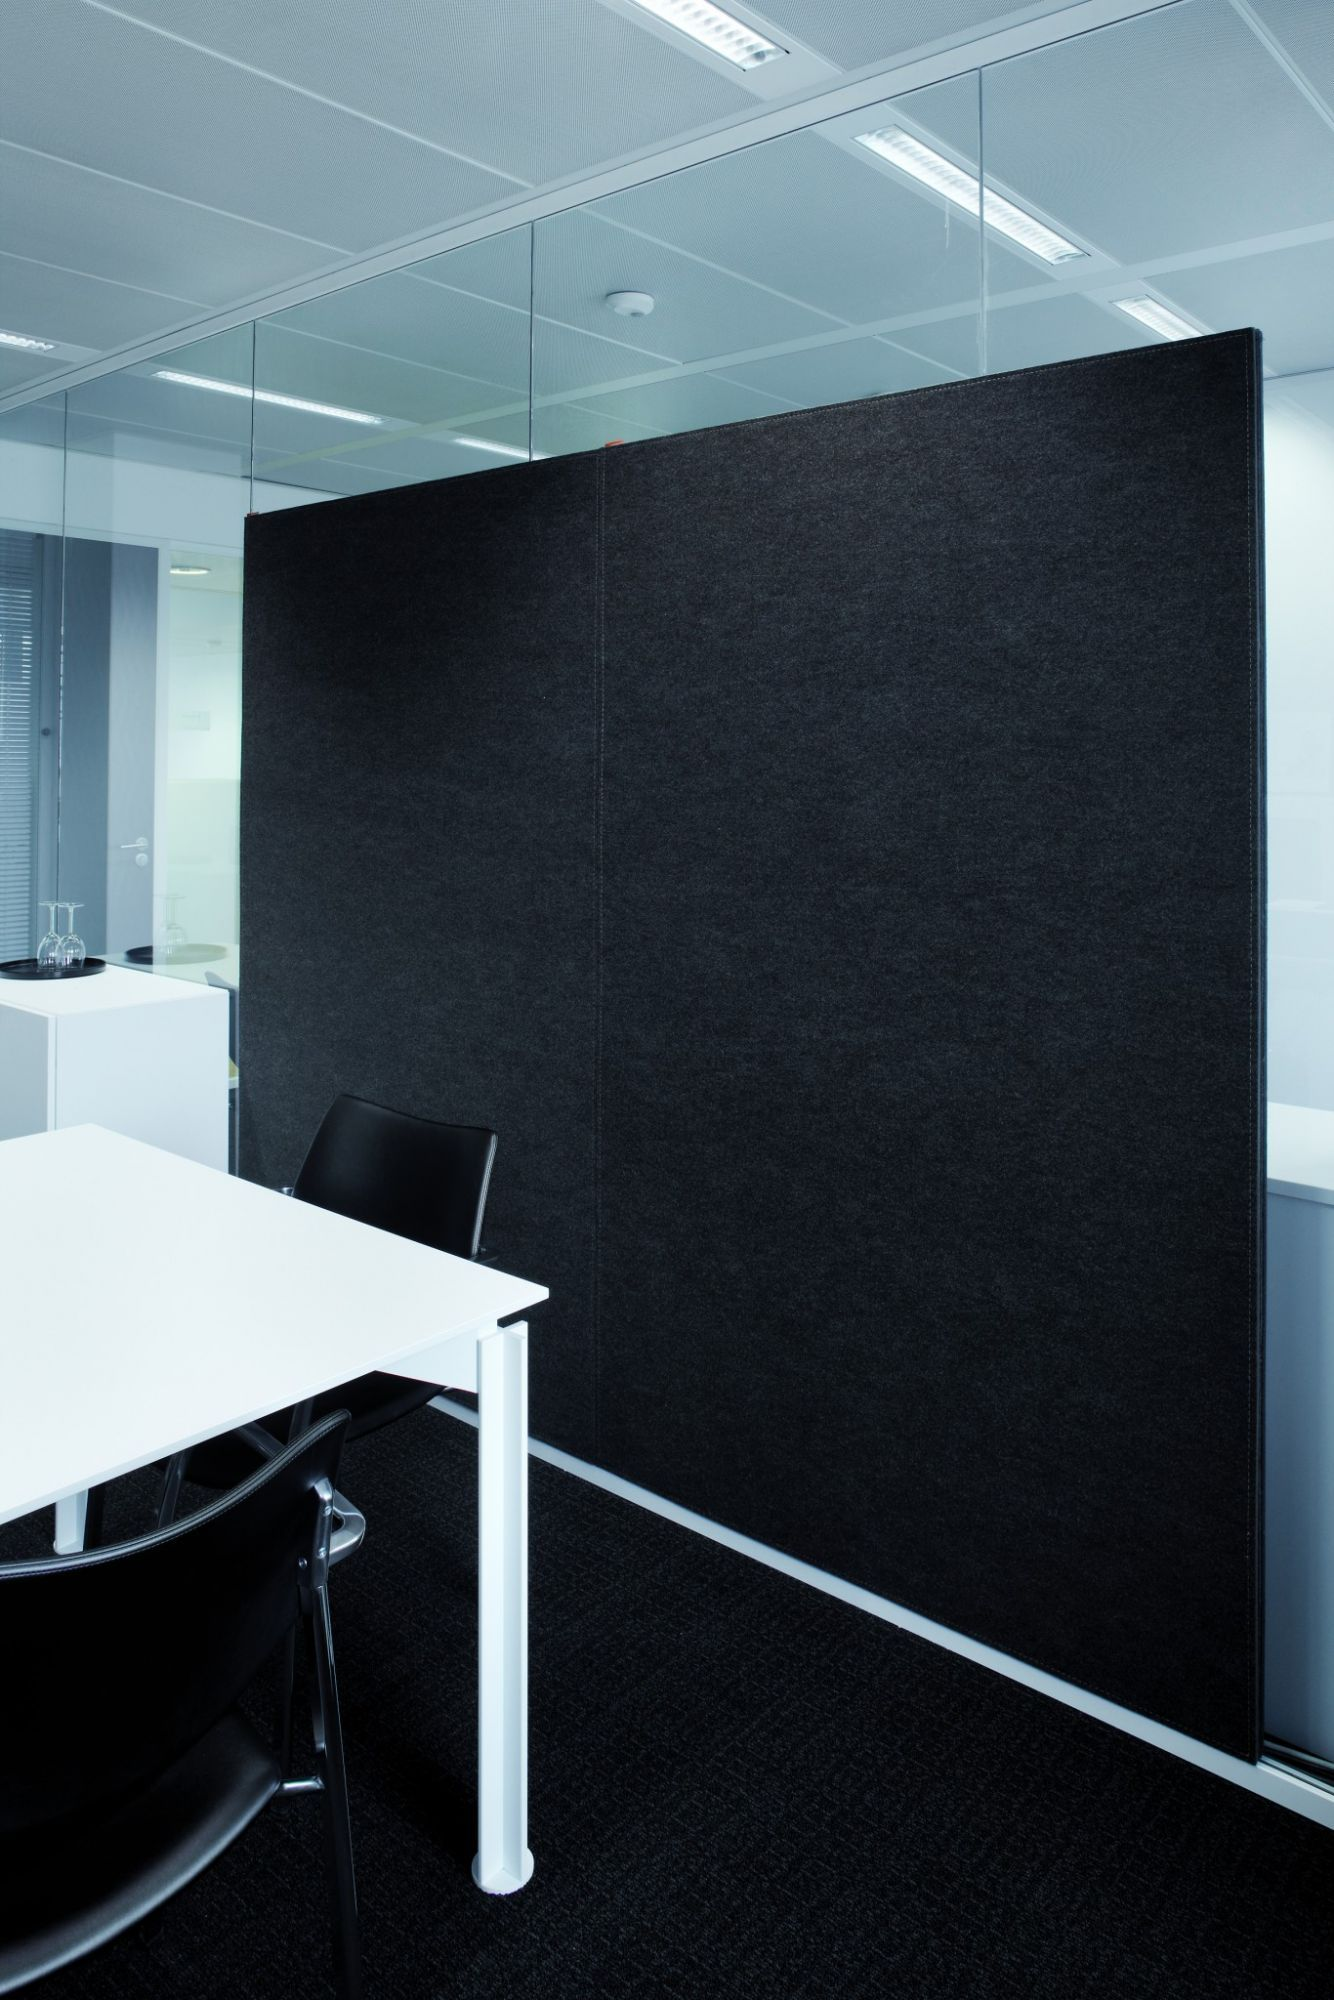 BuzziBack Board 1200mm high Acoustic wall panels